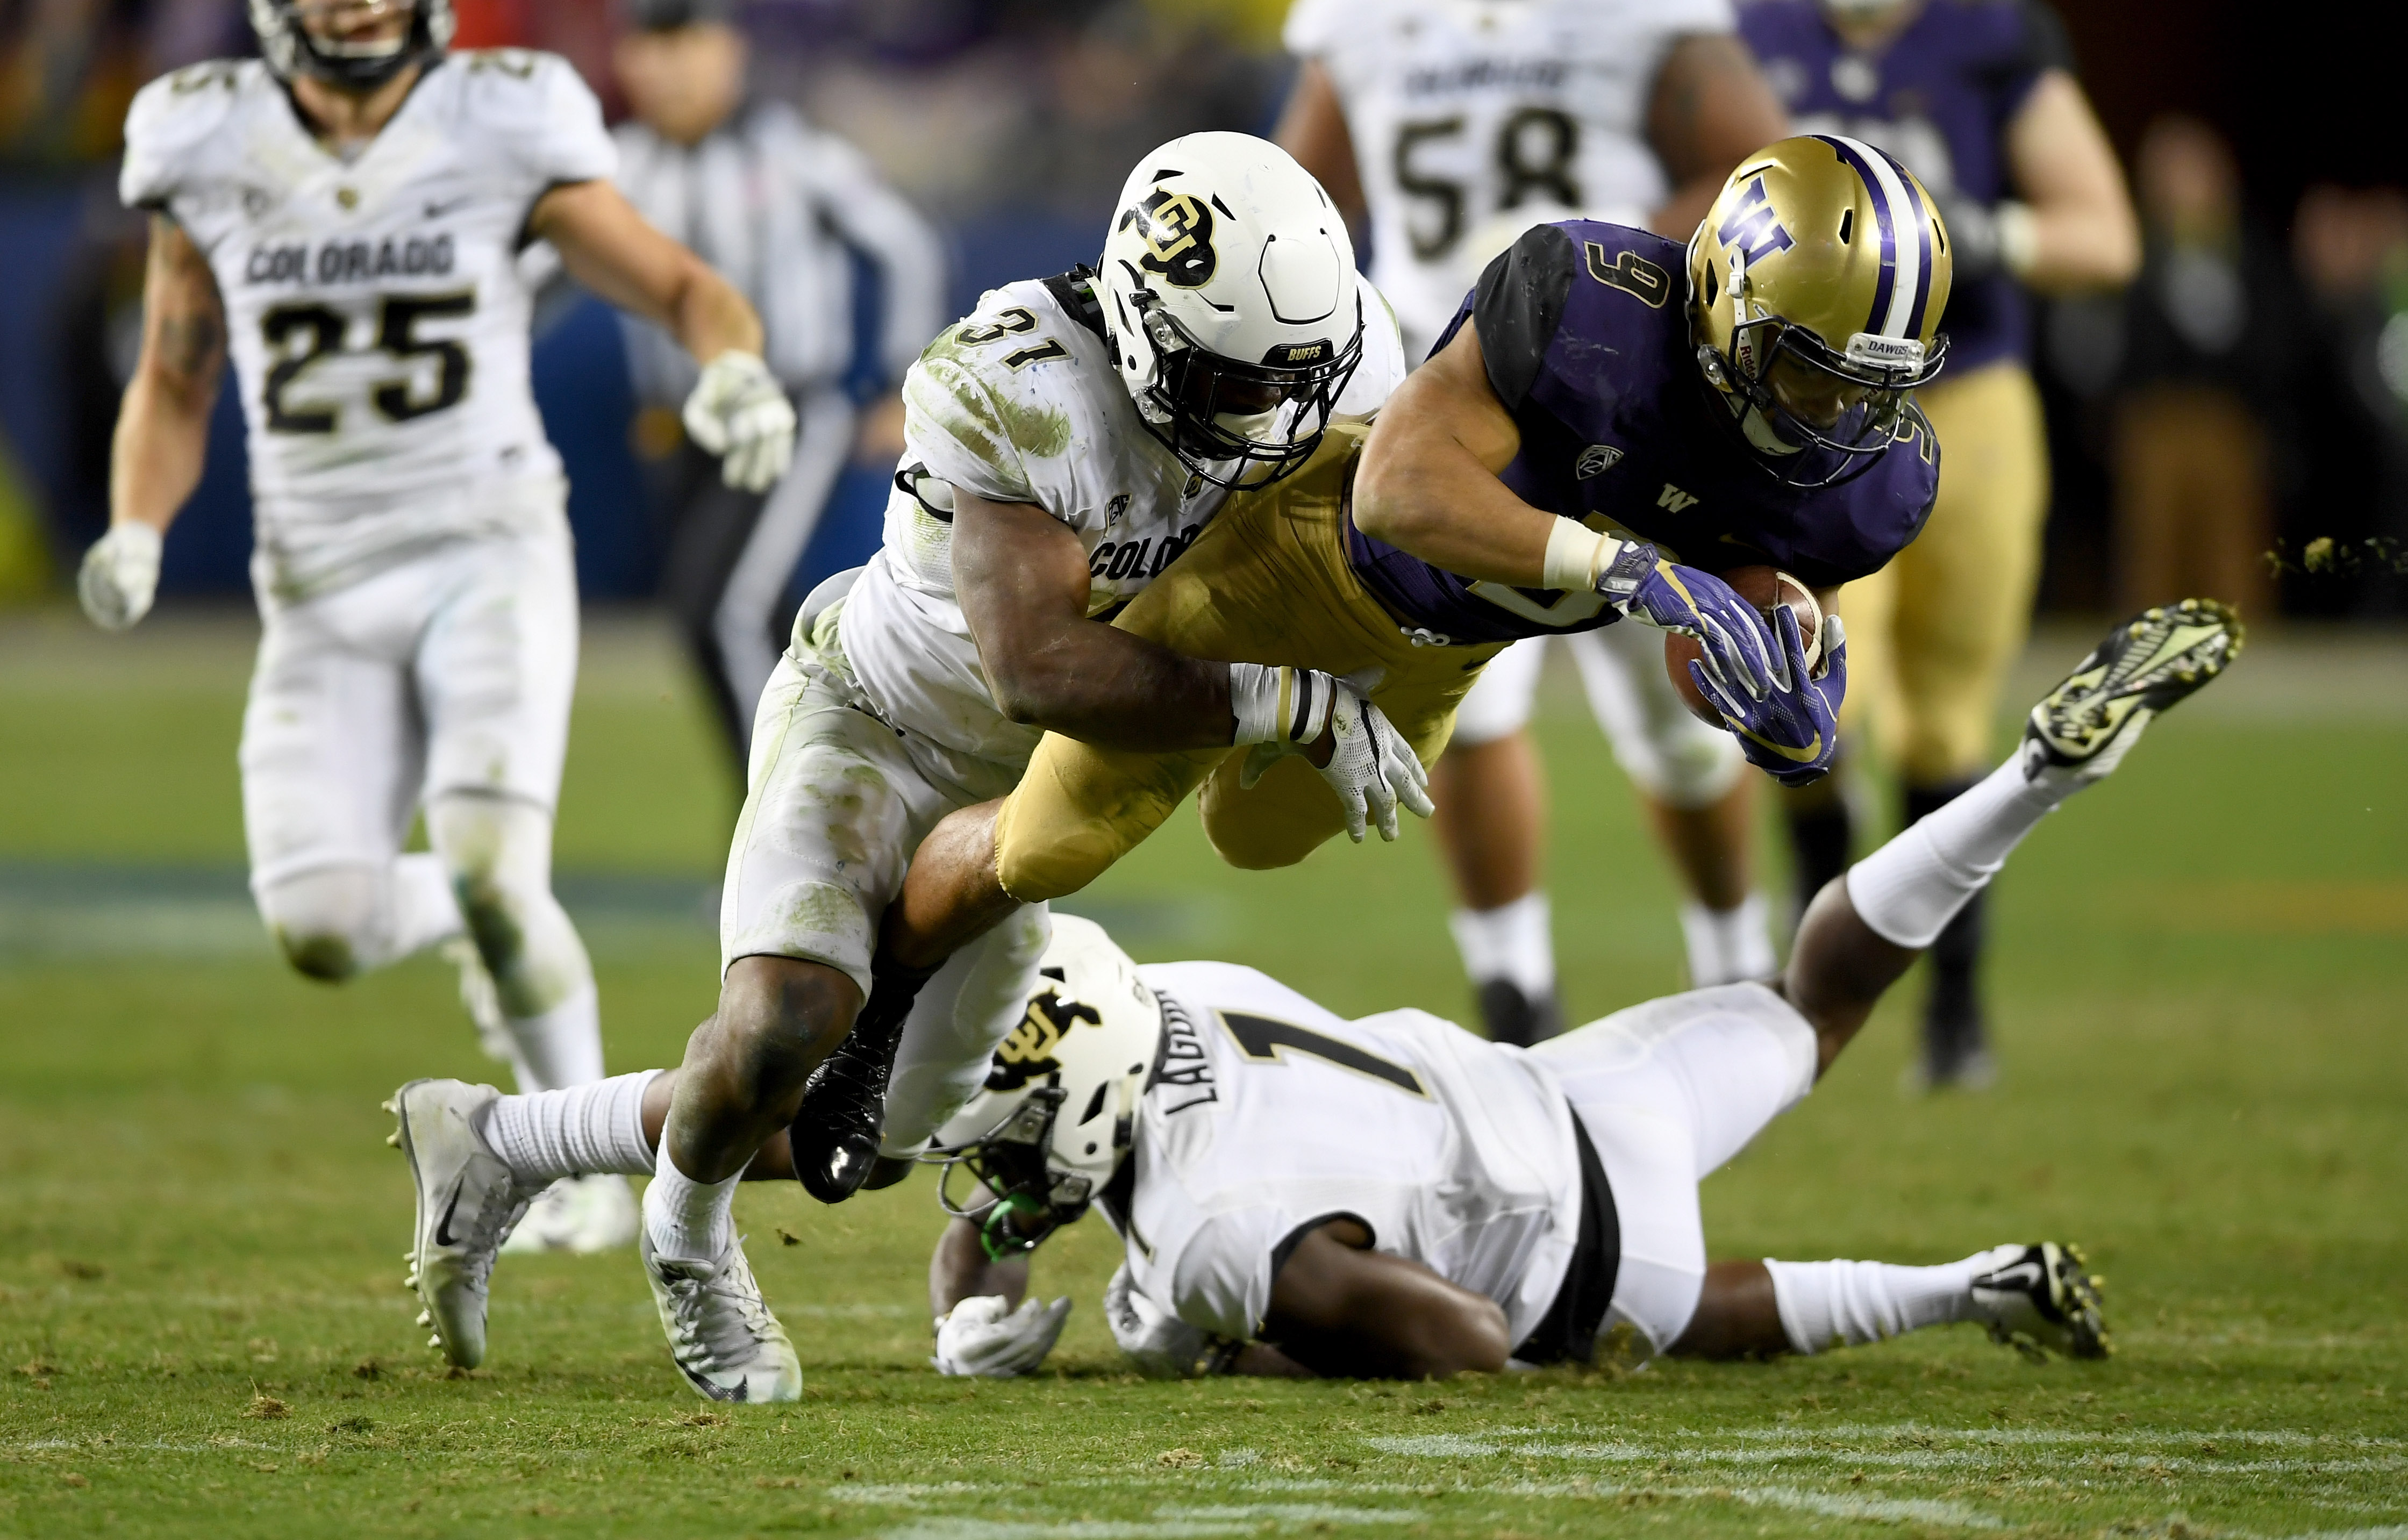 SANTA CLARA, CA - DECEMBER 02: Myles Gaskin #9 of the Washington Huskies is tackled by Kenneth Olugbode #31 of the Colorado Buffaloes during the Pac-12 Championship game at Levi's Stadium on December 2, 2016 in Santa Clara, California. (Photo by Thearon W. Henderson/Getty Images)